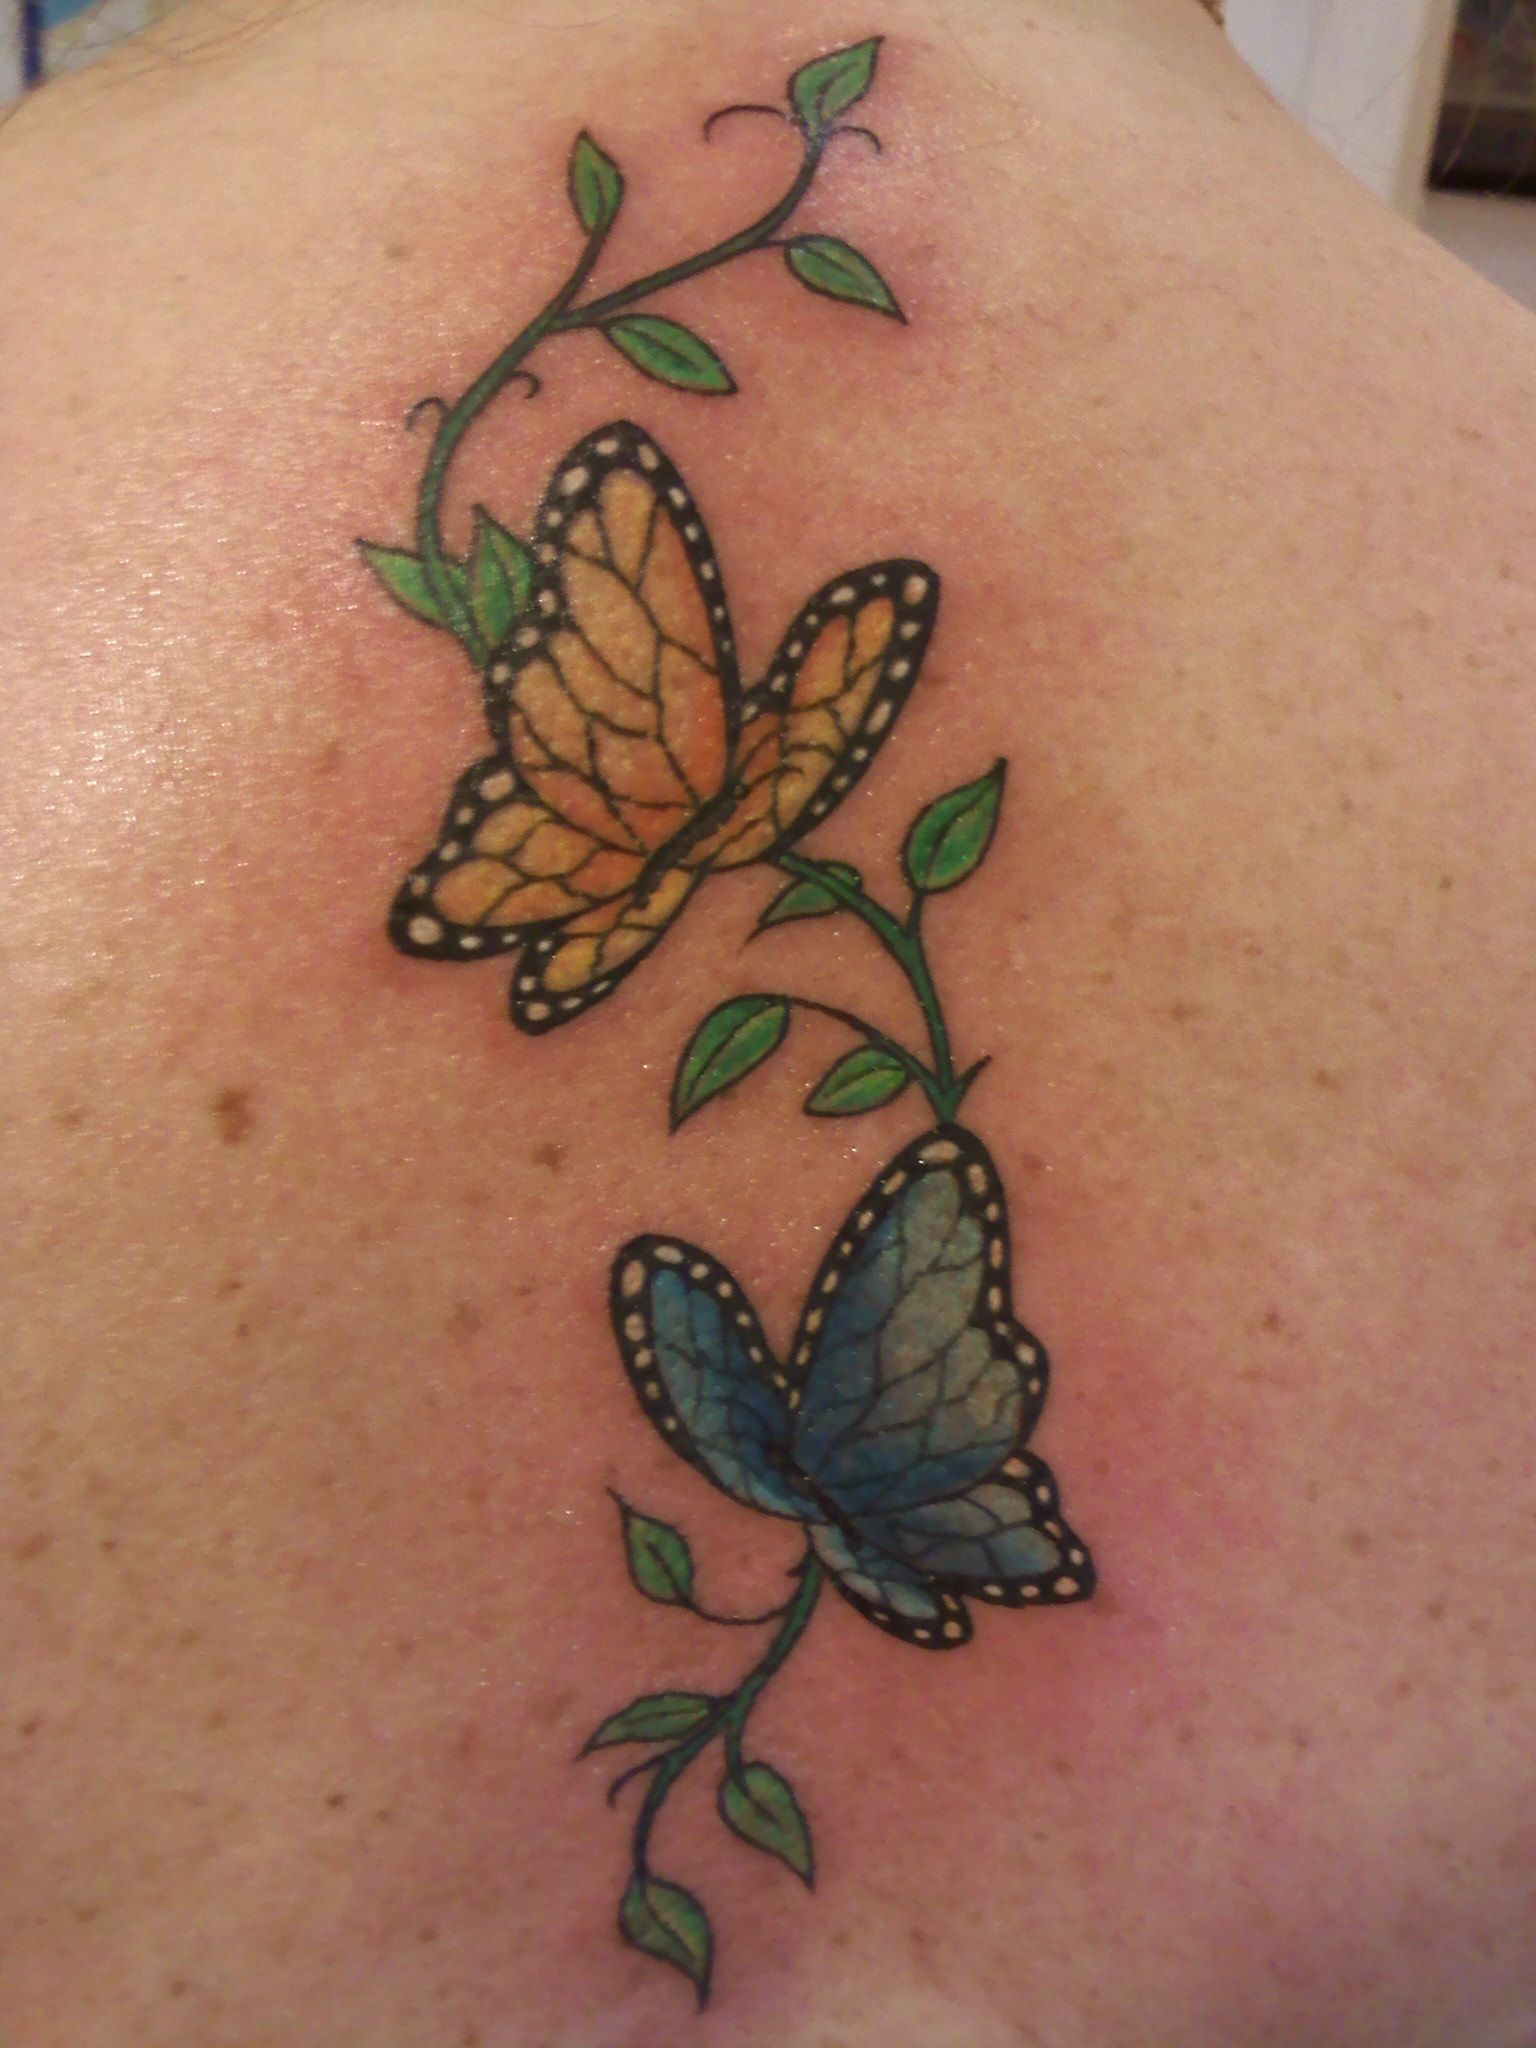 The o jays butterfly tattoos and clothes on pinterest - My Gemini Butterfly Tattoo Tattoo Ideas Pinterest